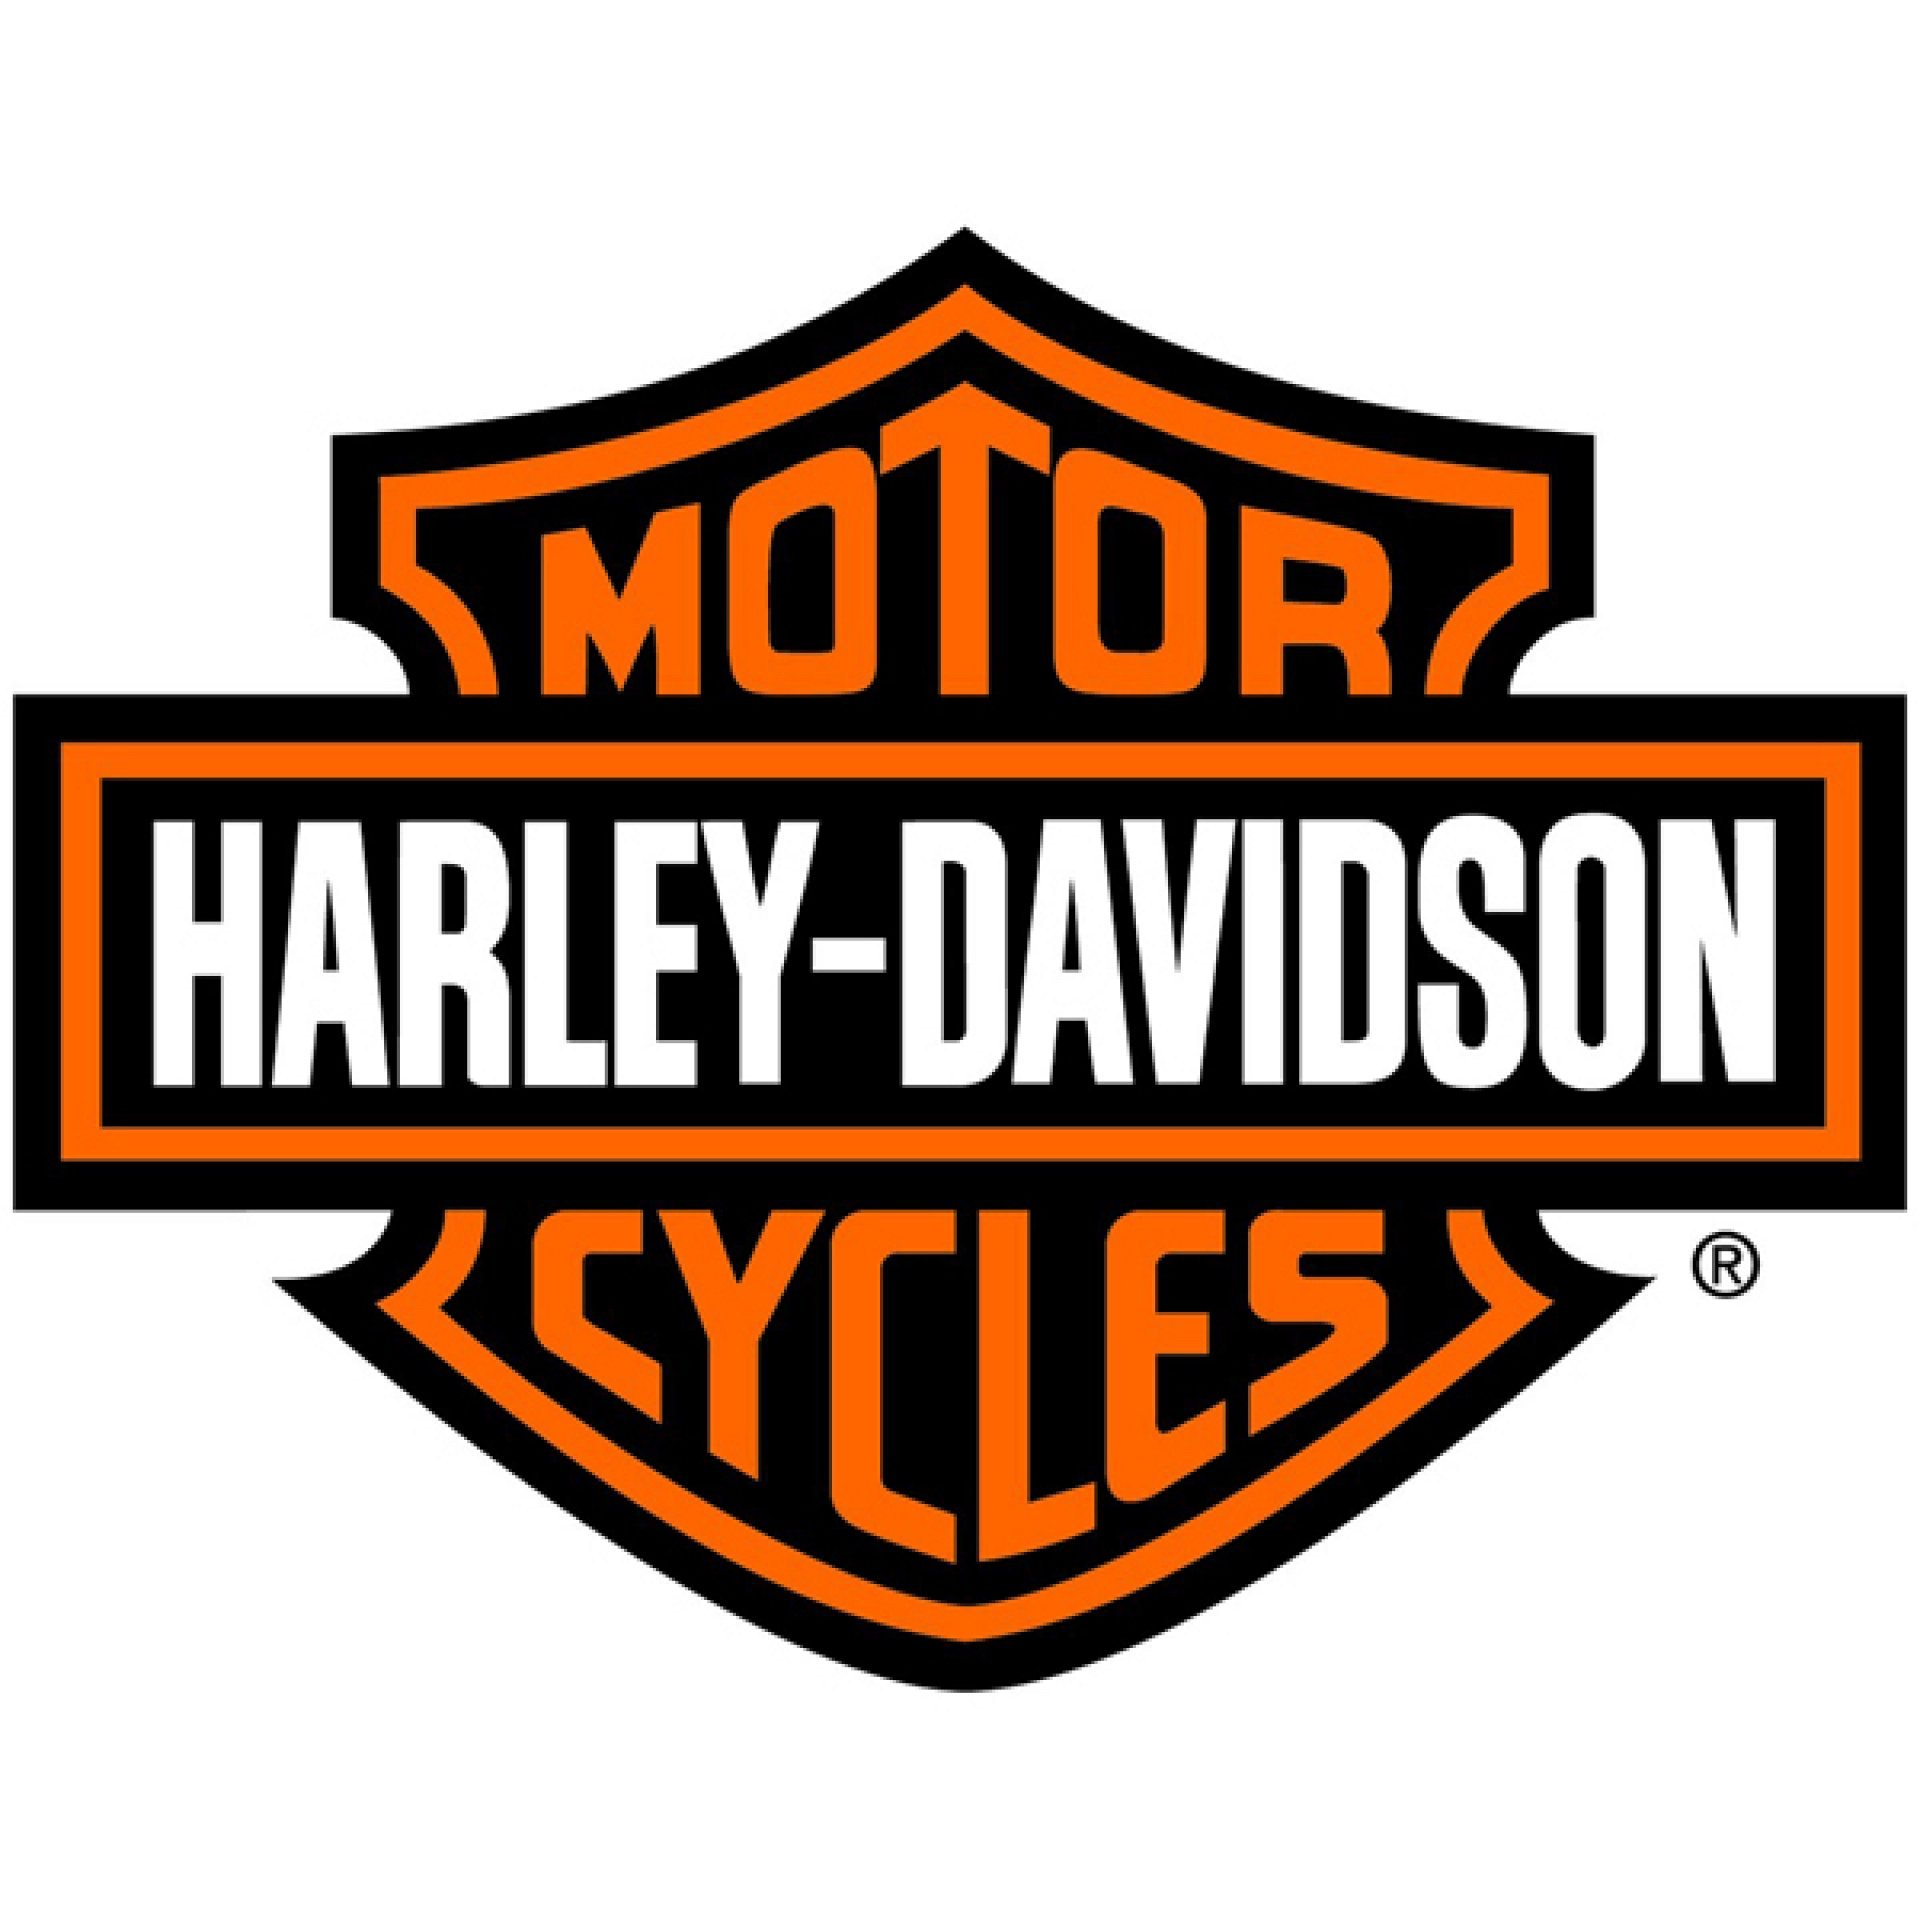 Harley Davidson Genuine Parts for sale